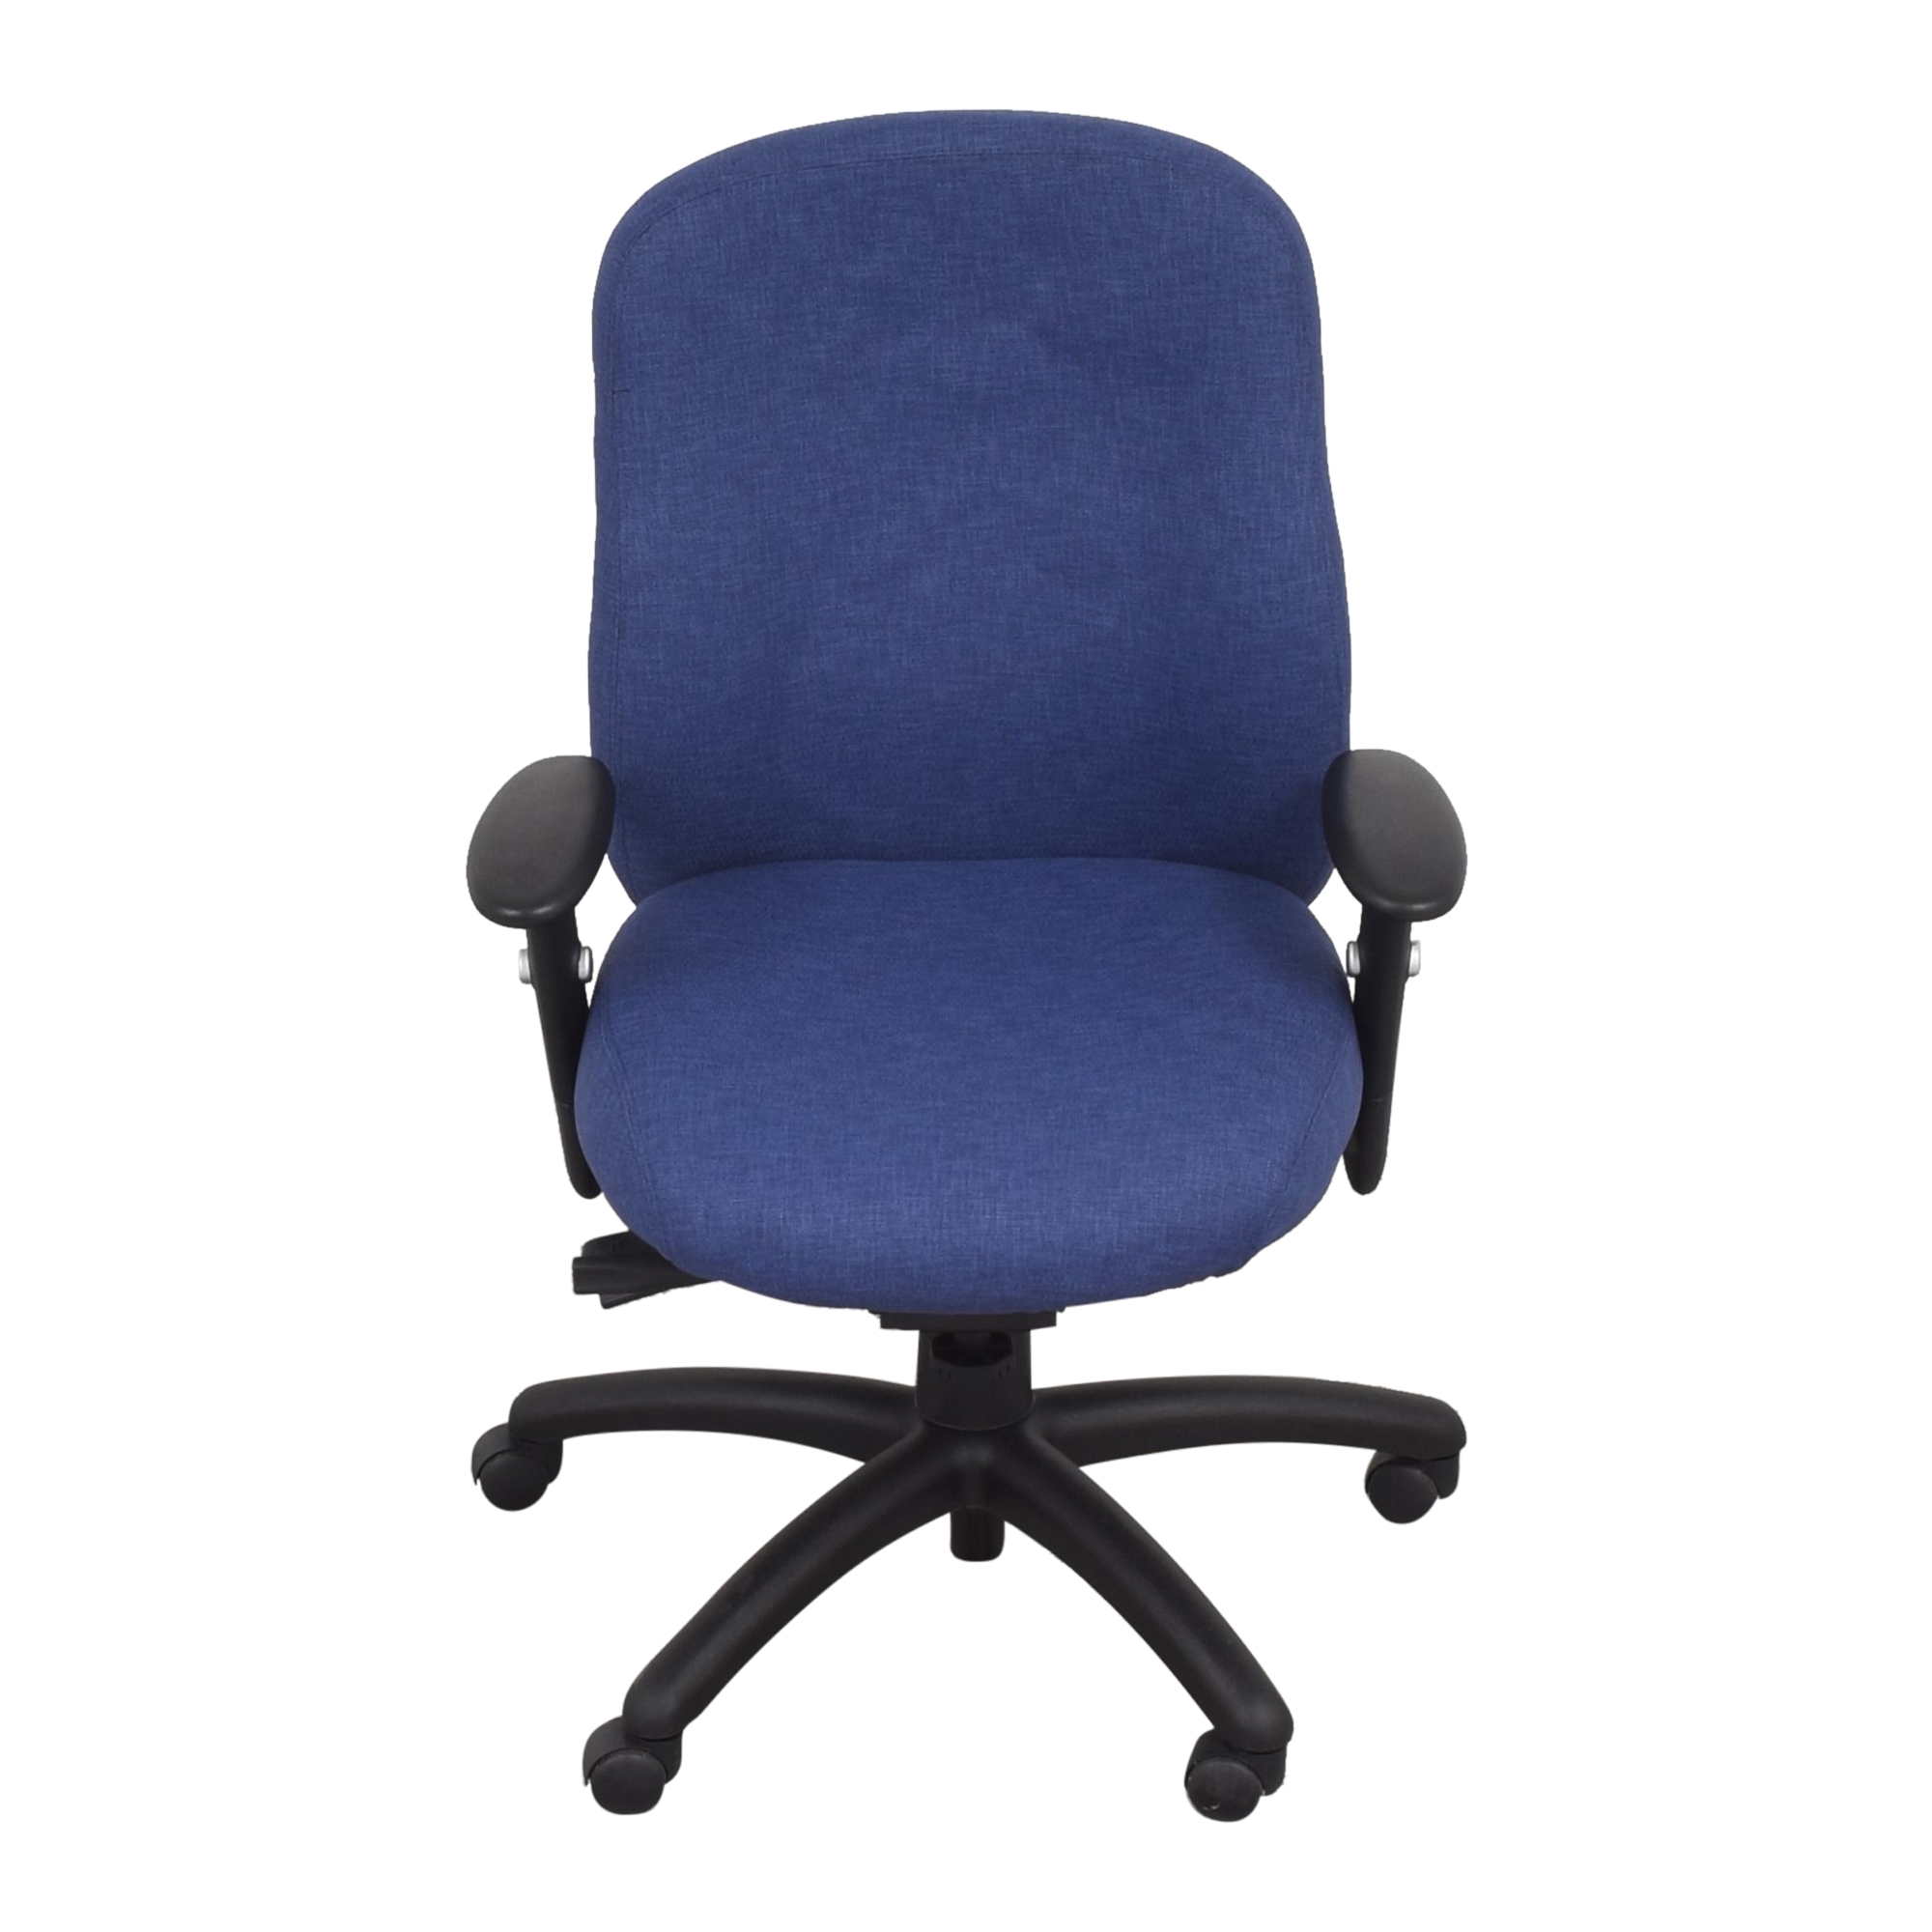 shop Offices to Go Multi-Function Desk Chair Offices to Go